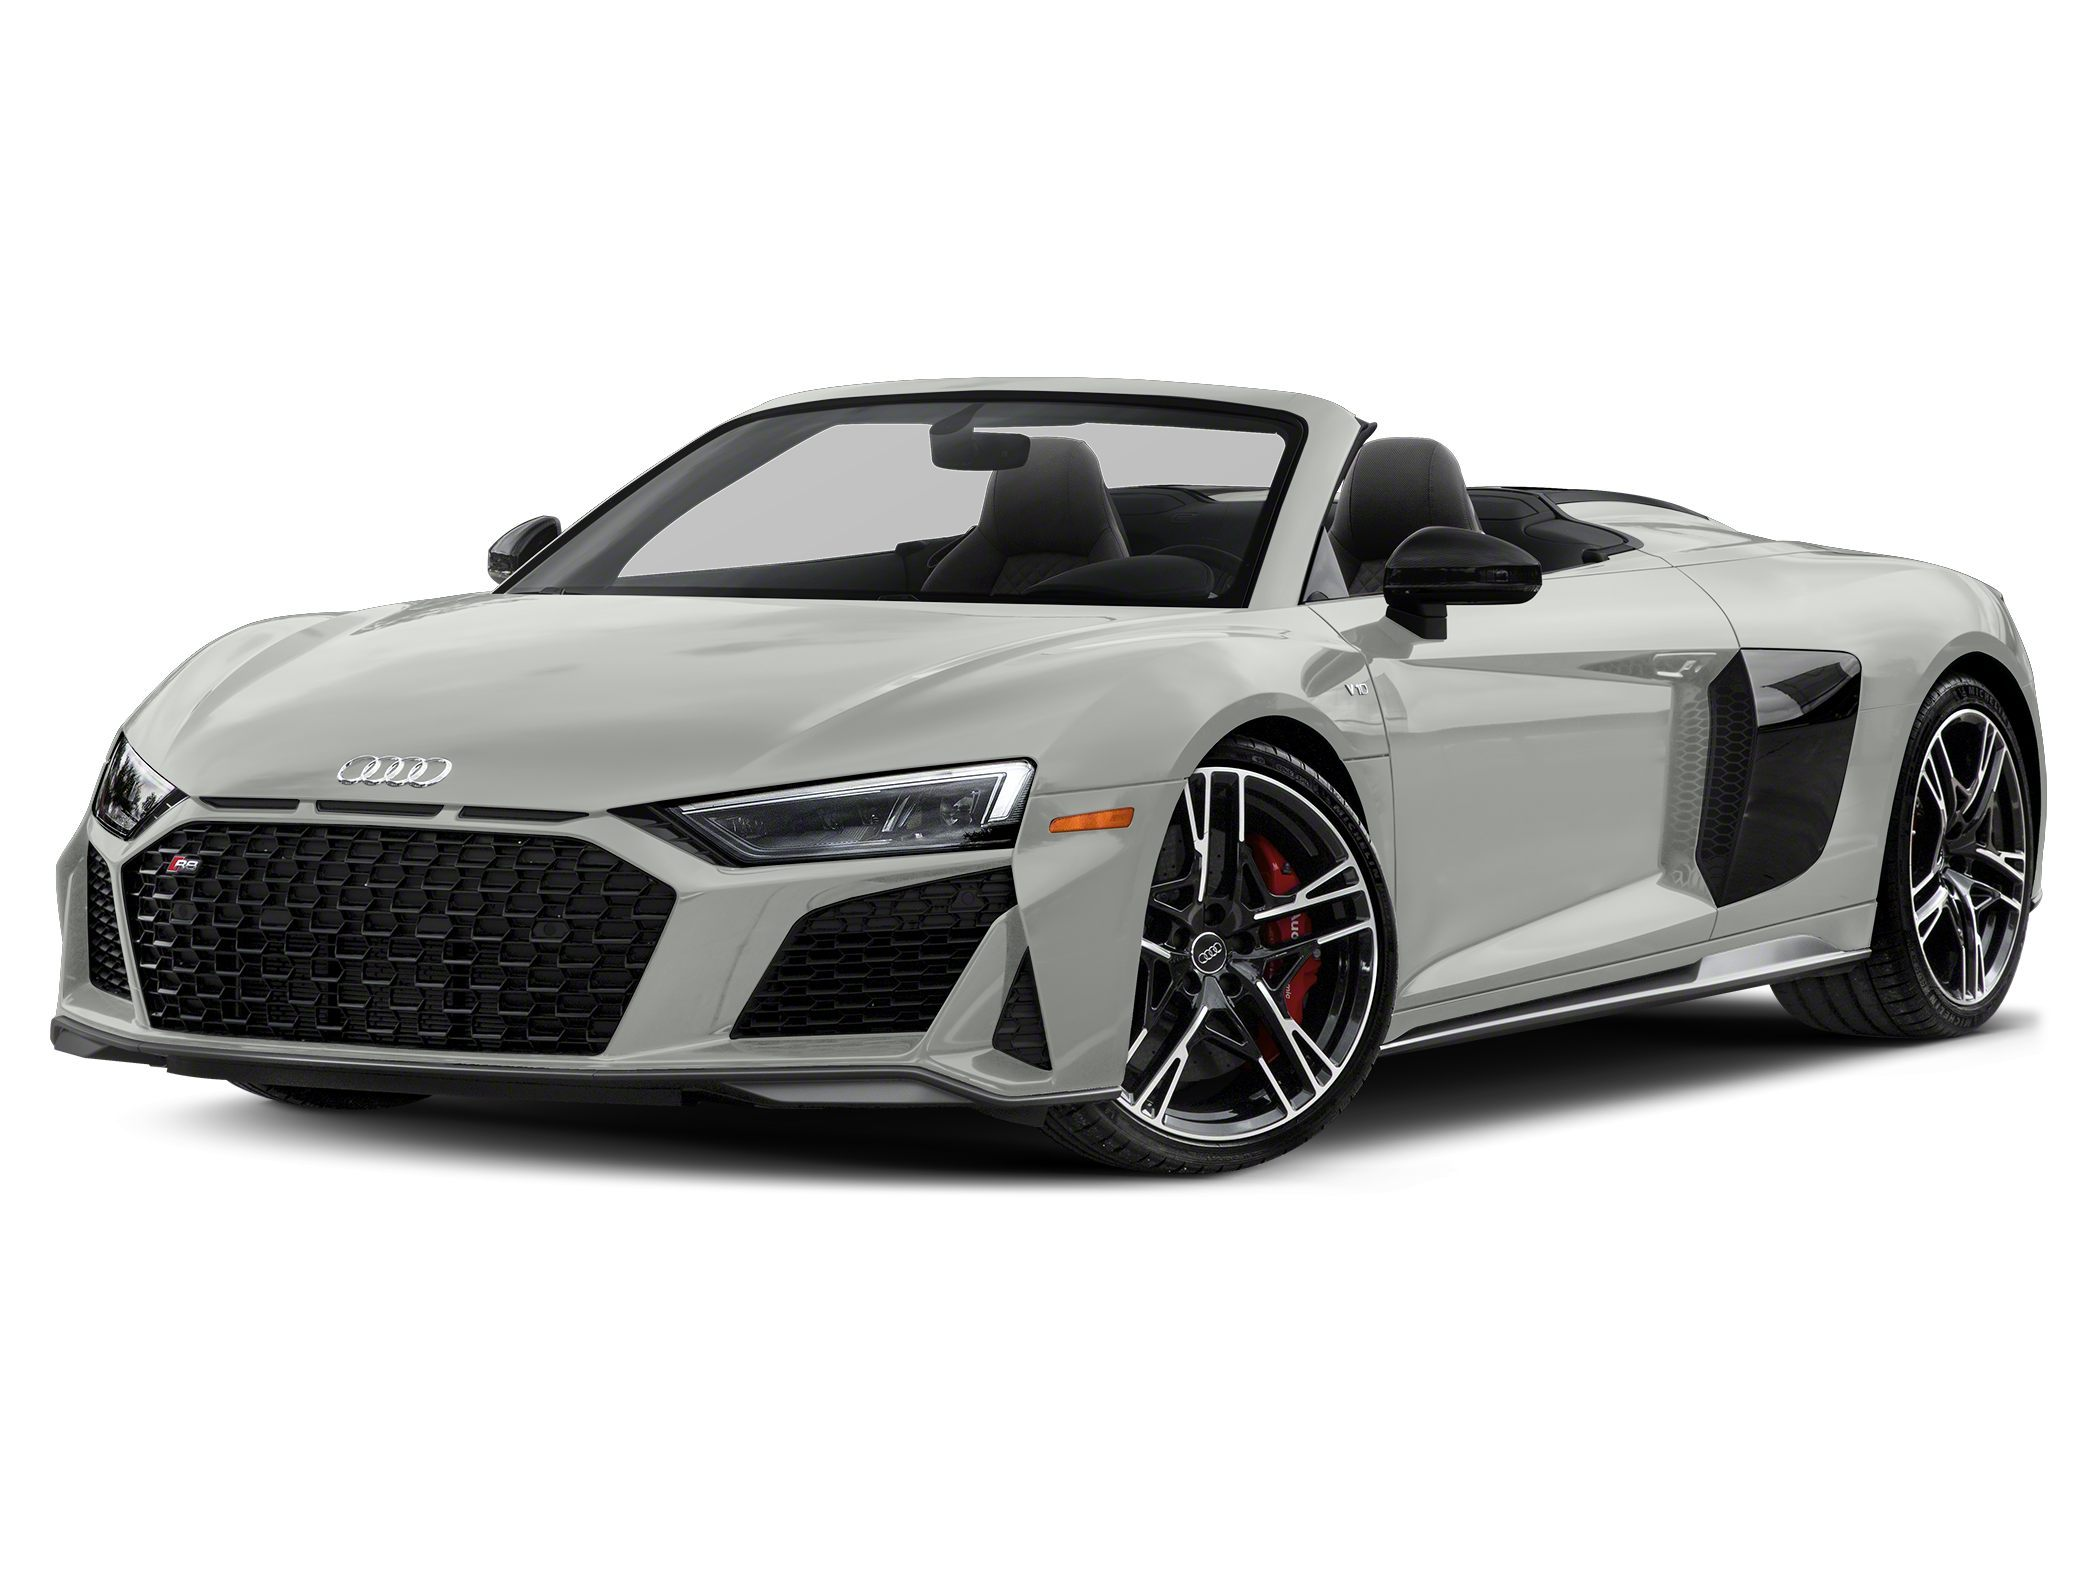 Used 2020 Audi R8 For Sale Sanford Fl Wua4bcfx2l7900057